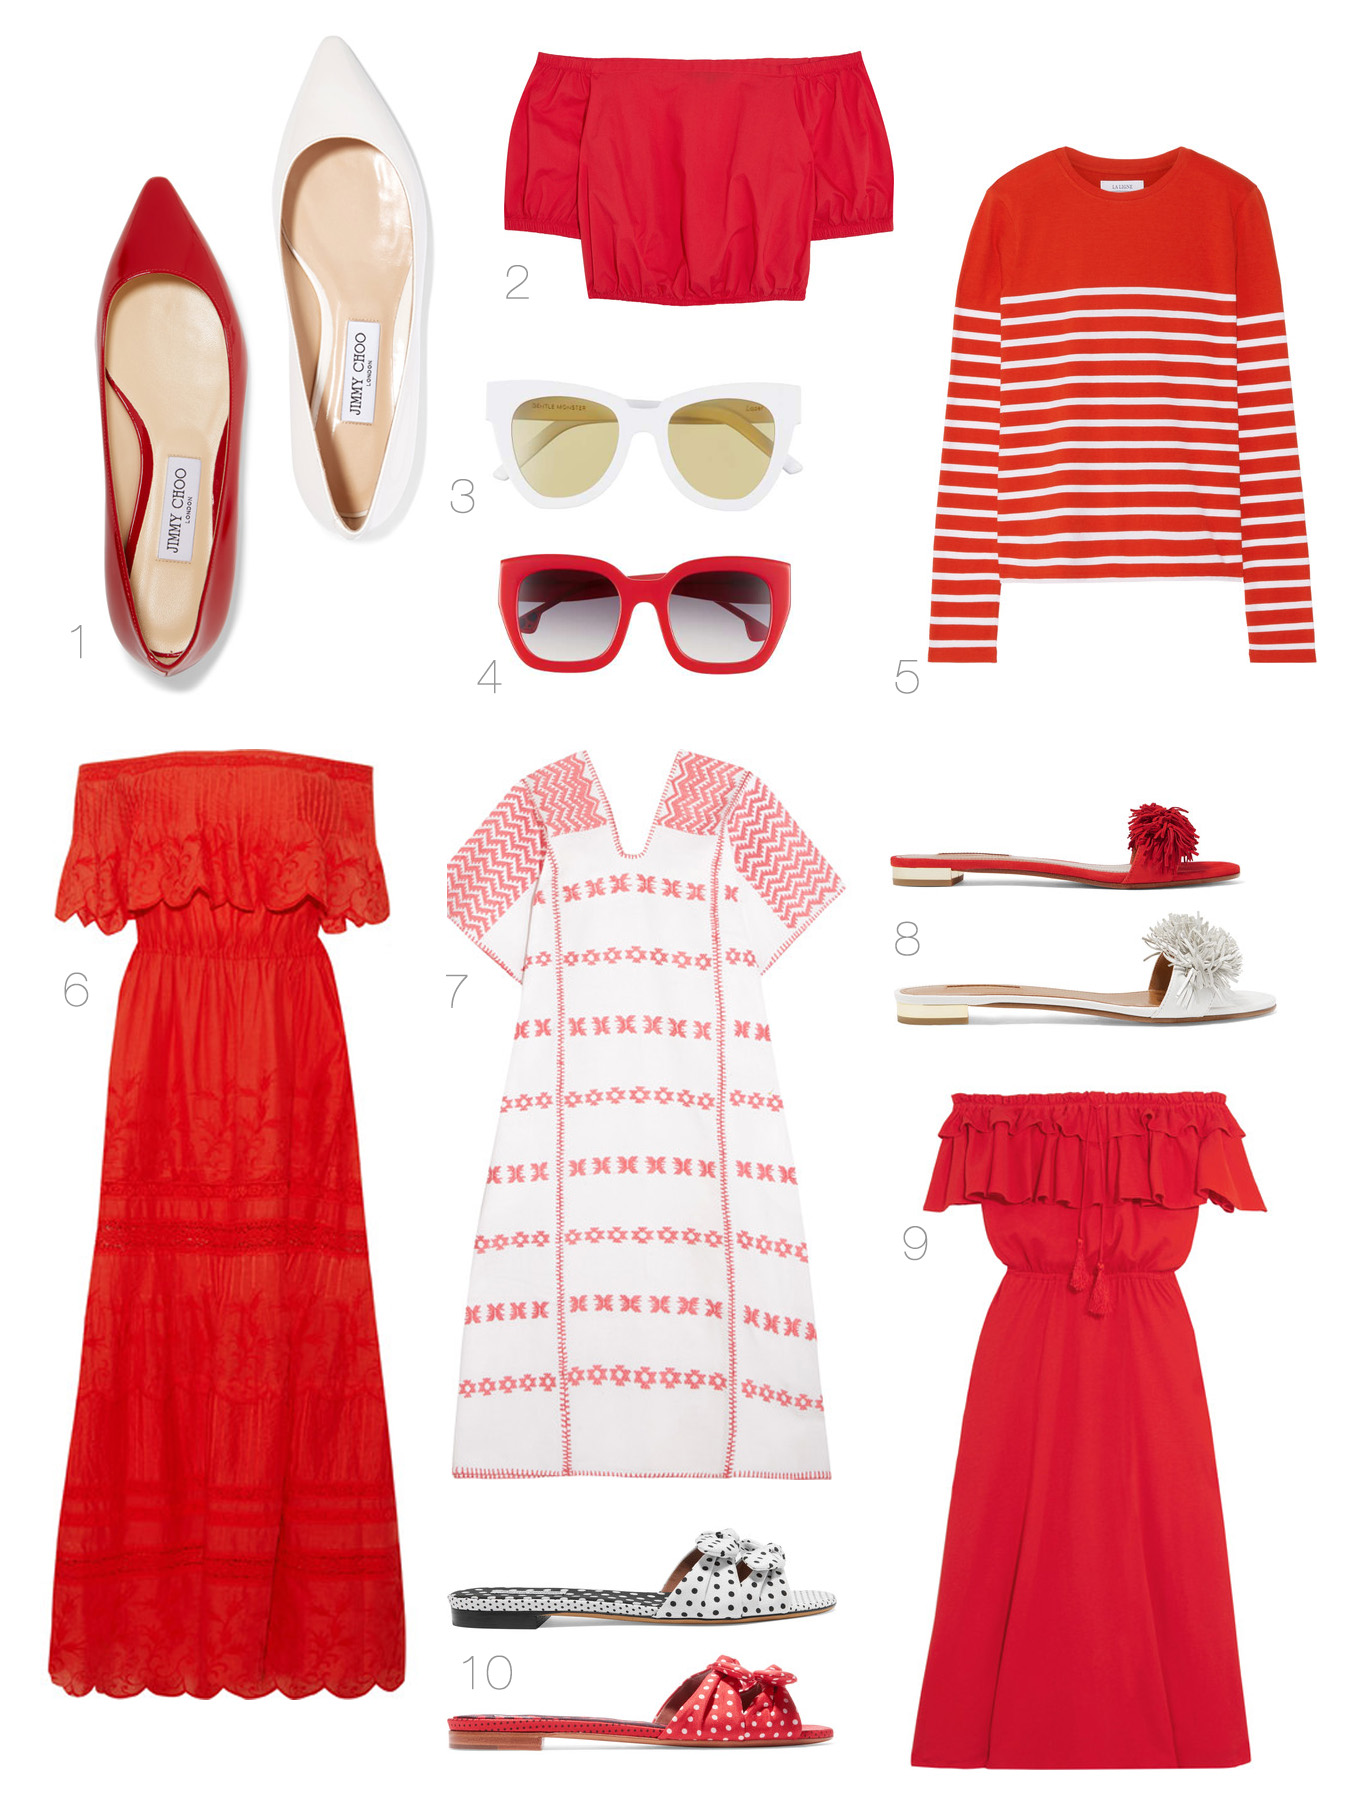 Ridgely Brode keeps seeing red when she is looking around and found a bunch of really cute red things she is considering on her blog, Ridgely's Radar.